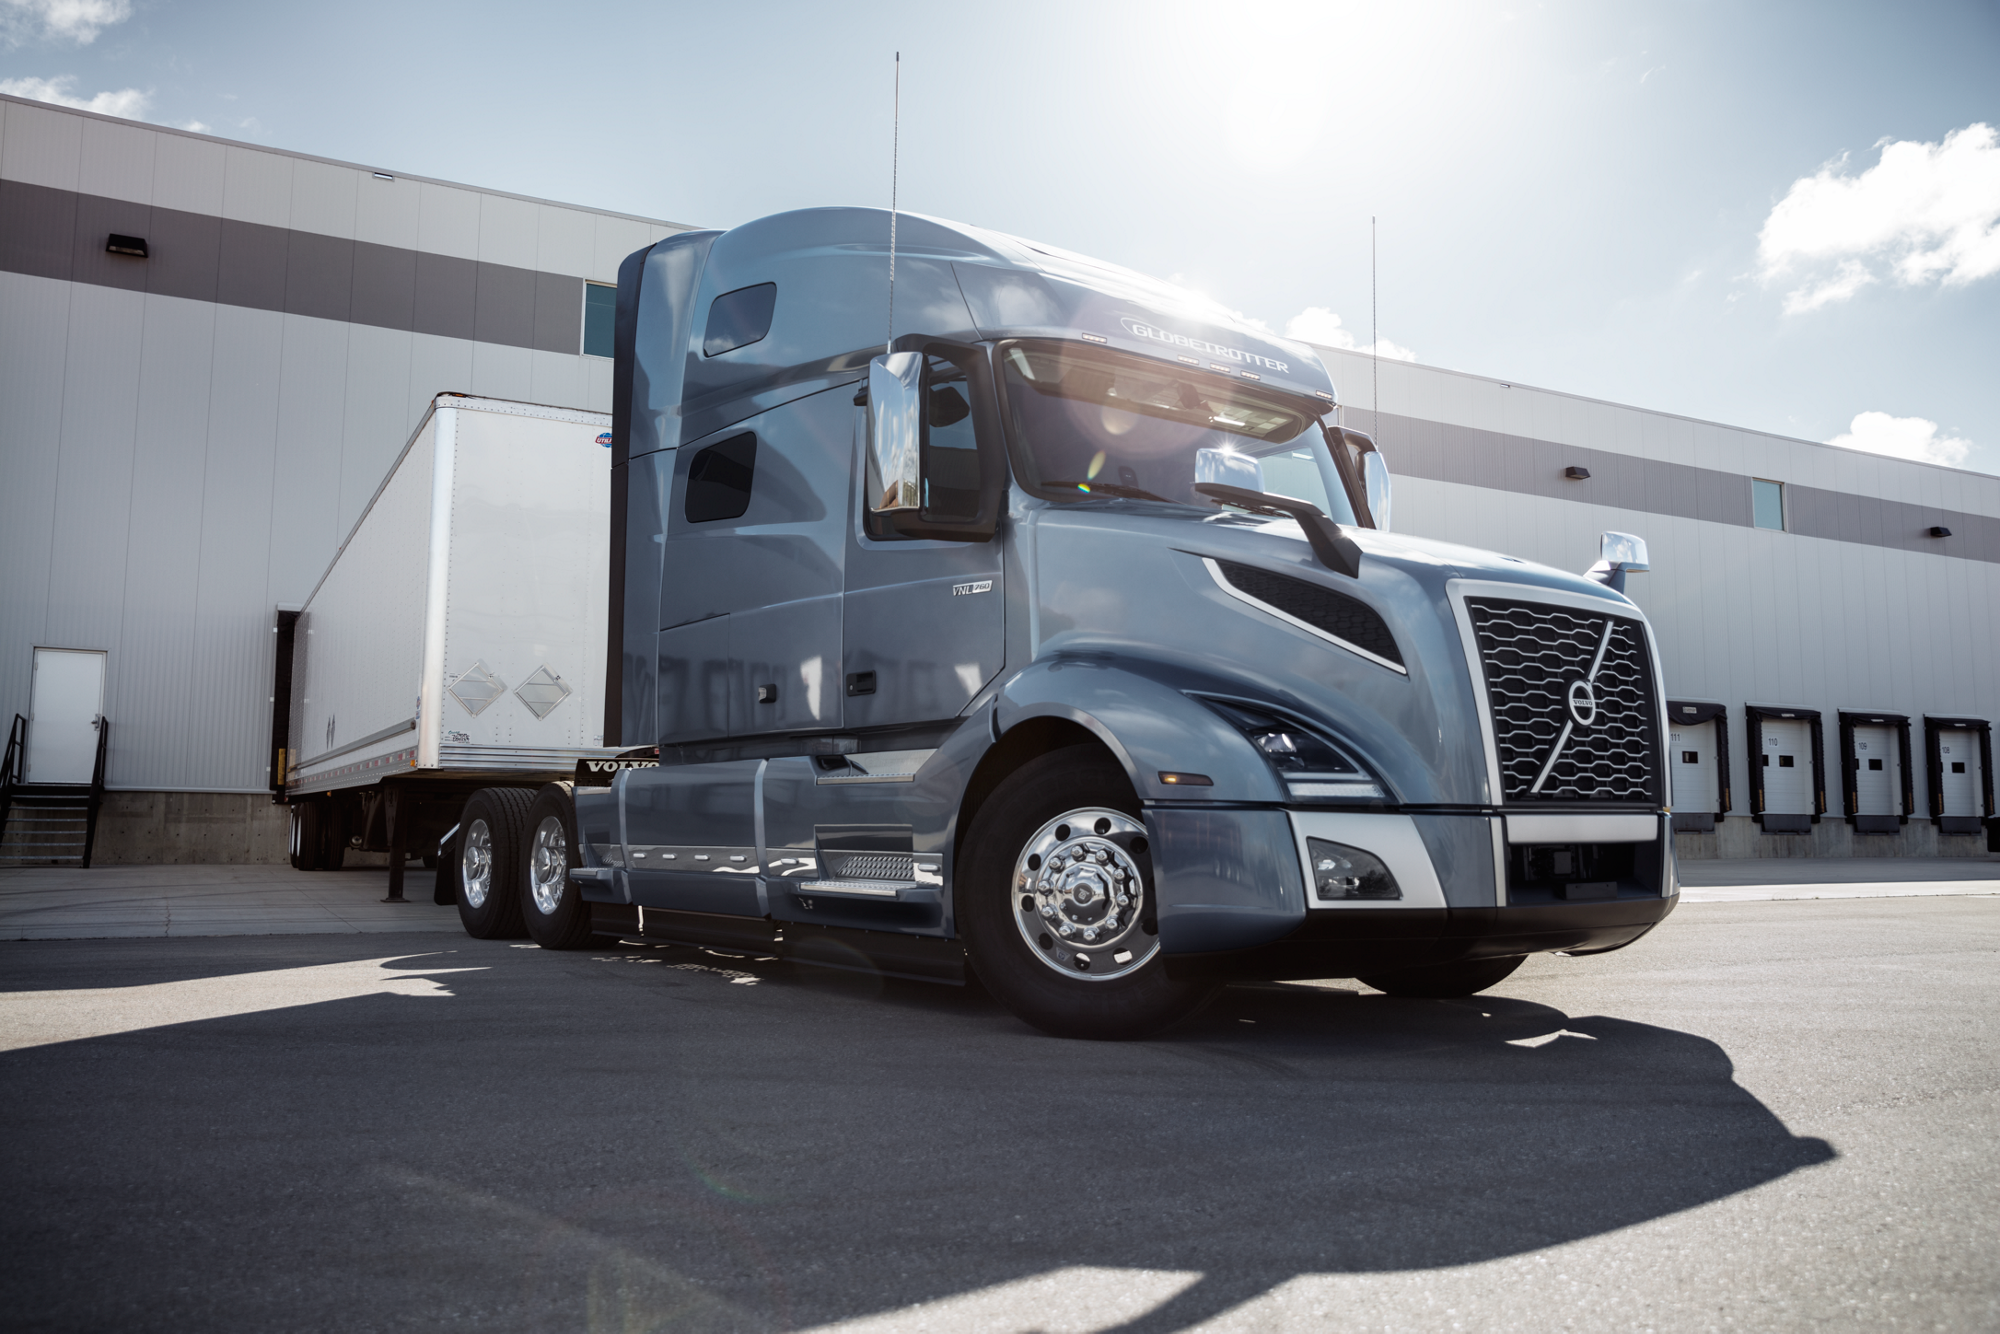 Volvo Trucks Announced The New Xceed Fuel Efficiency Package For Volvo Vnl 760 And Vnl 860 Models Operating In Dry Van And Volvo Volvo Trucks Fuel Efficient